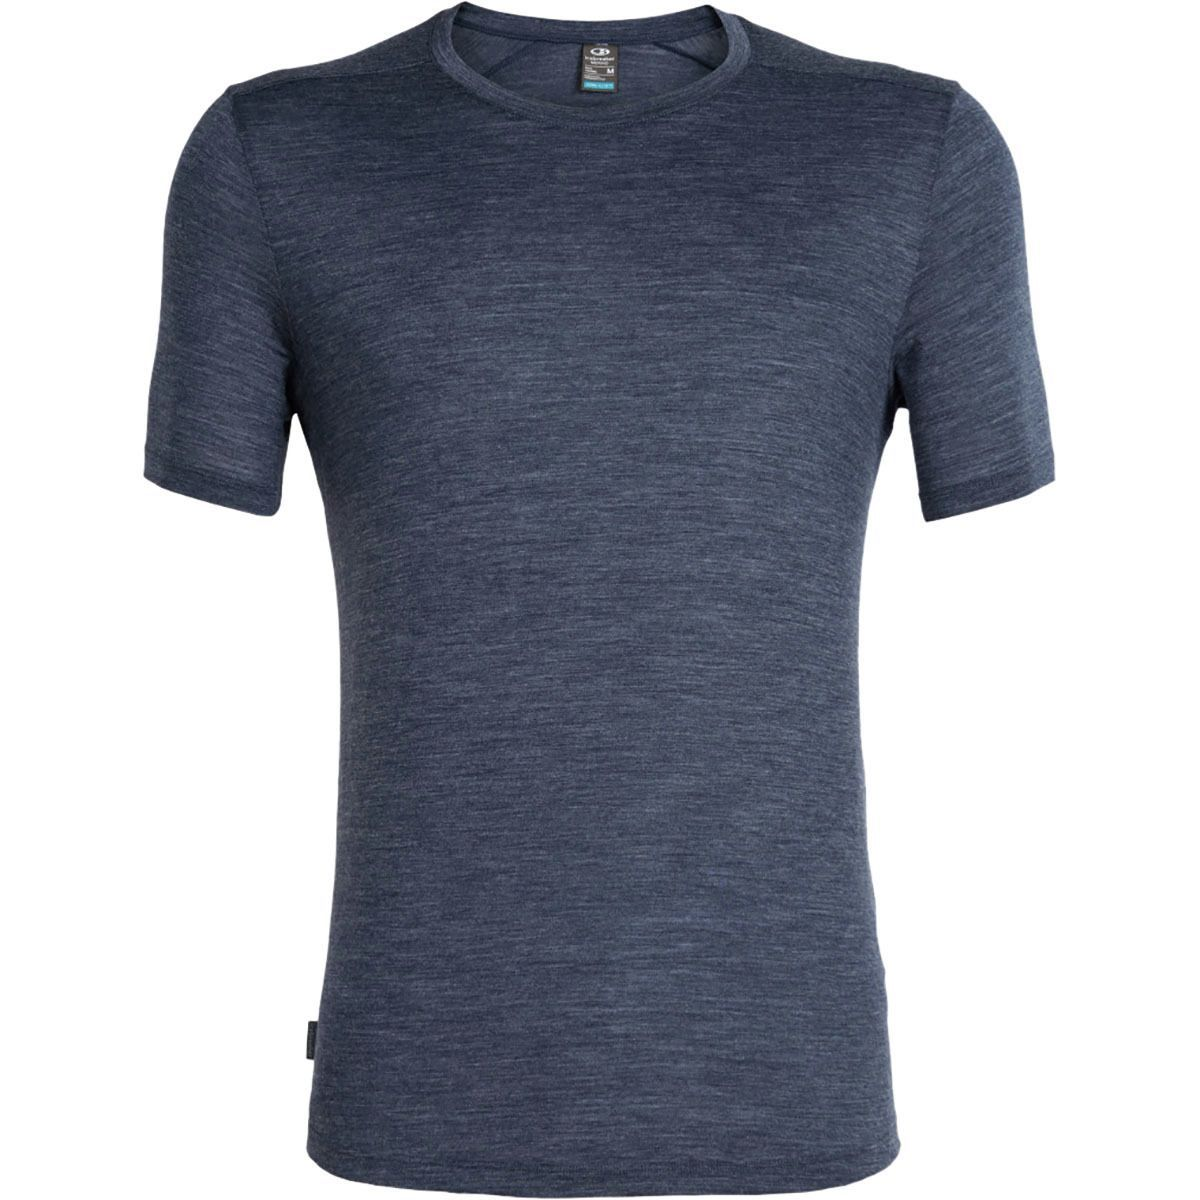 Sphere Short-Sleeve Crew Shirt – Men's